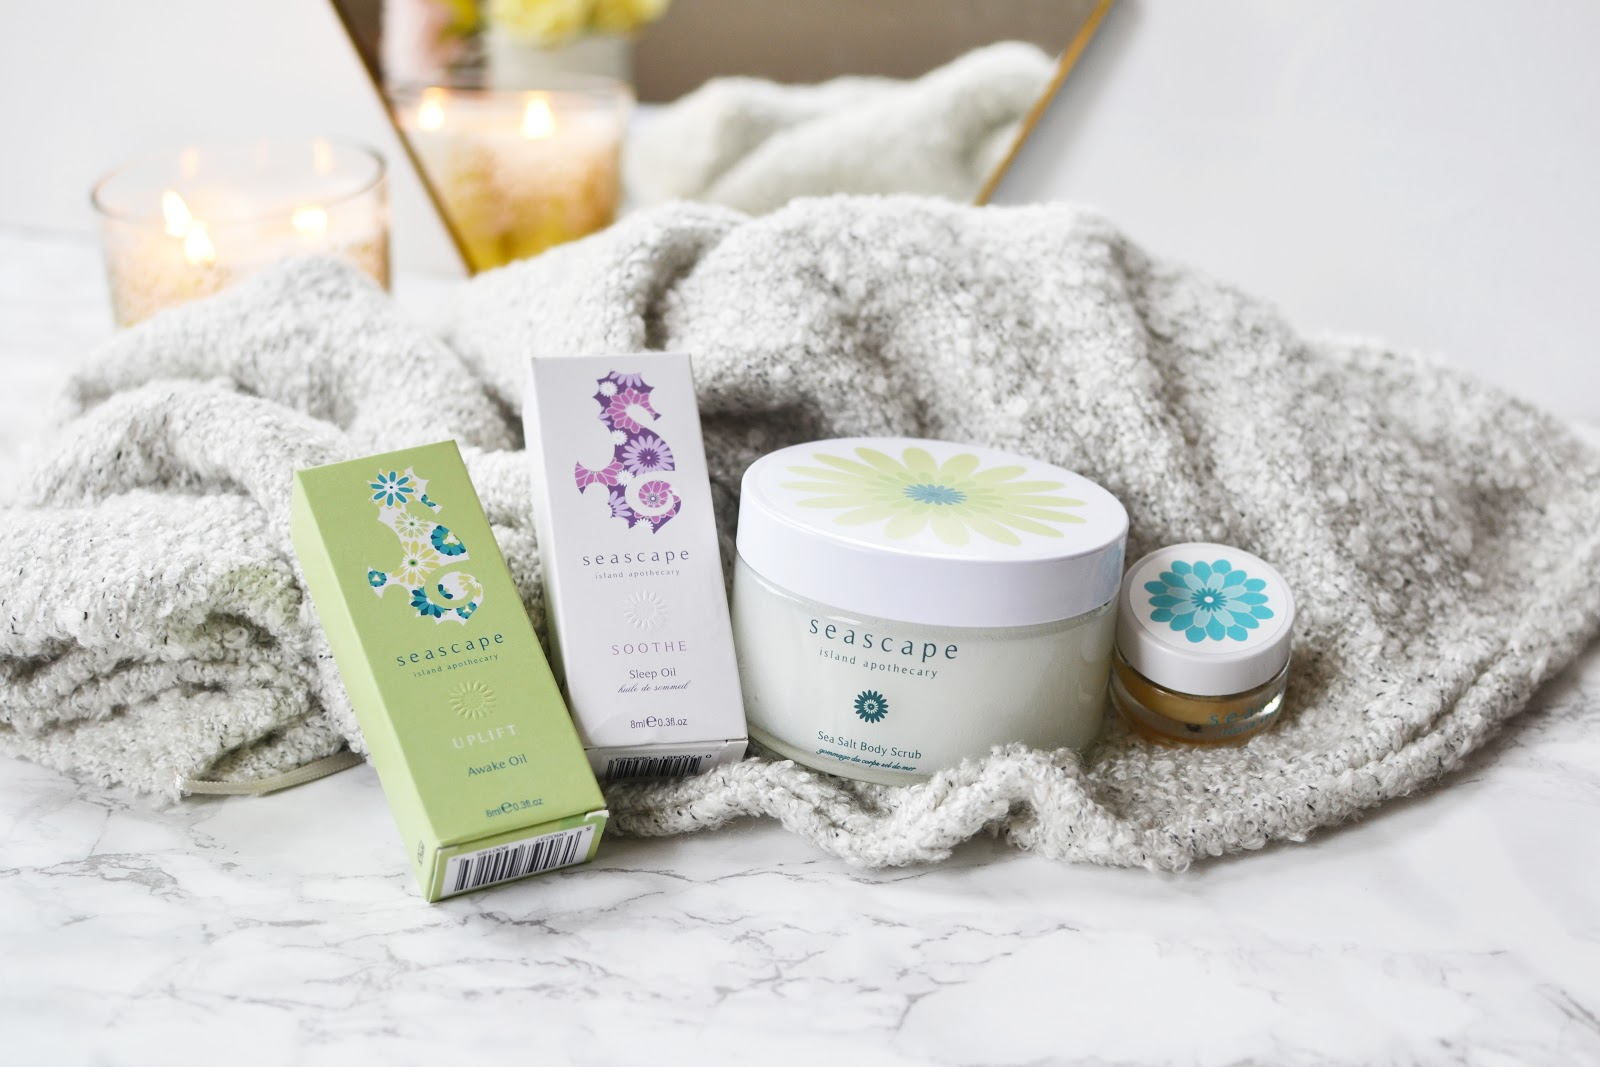 Seascape Island Apothecary, Natural Bath & Body Products